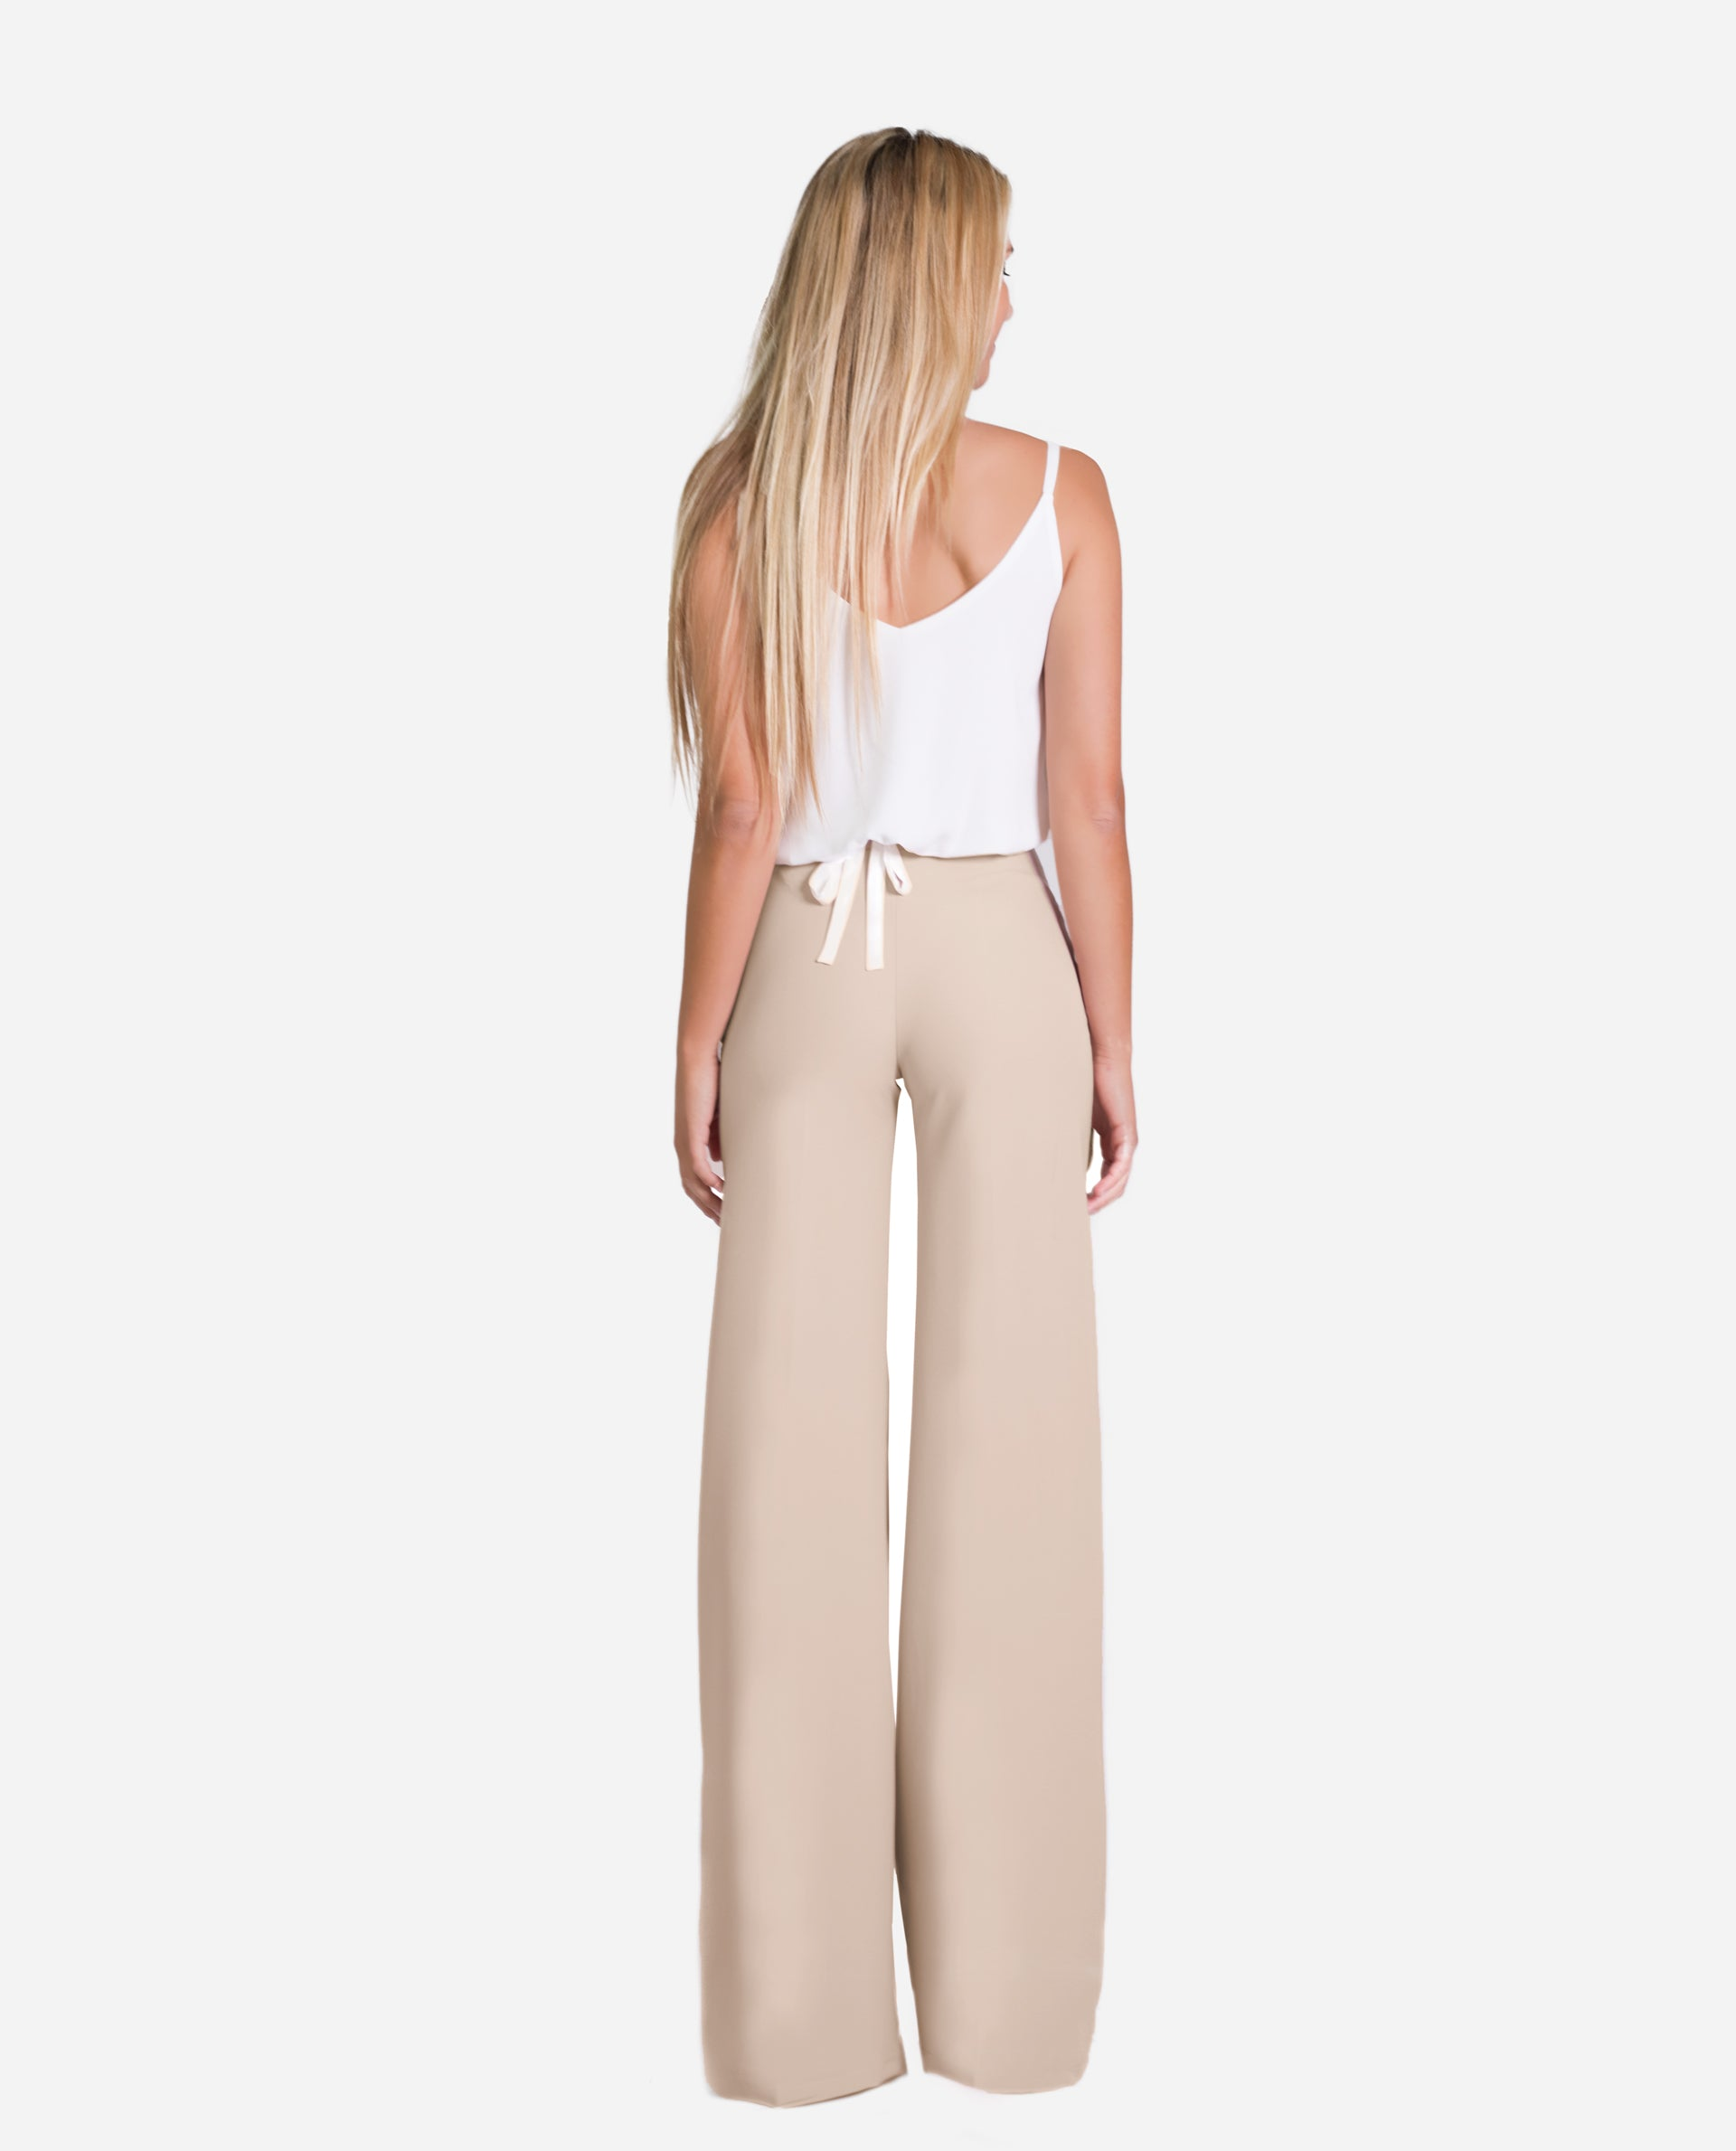 Palazzo Trousers Beige Waist High Rubber Waist The Are